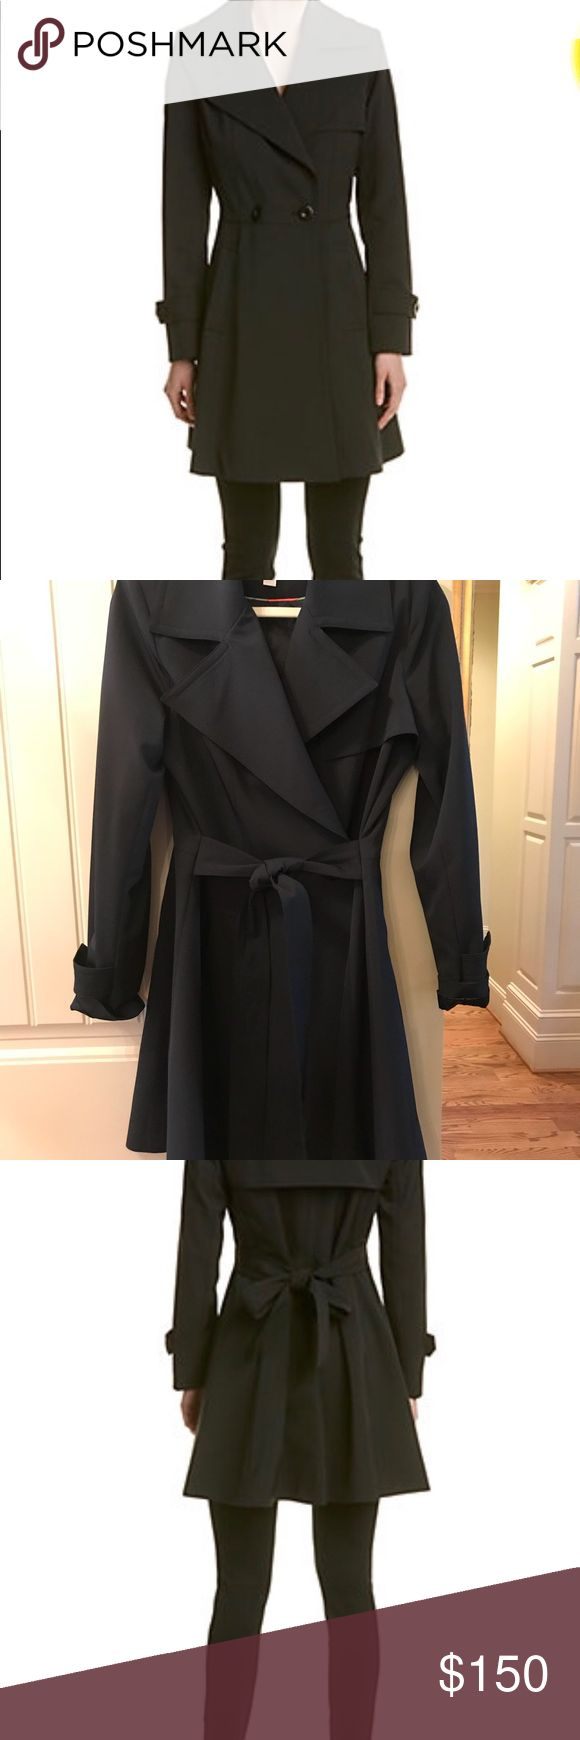 Trina Turk Rain Coat Trench size 6 Super Cute Black Trina Turk Rain Trench Coat, lined, excellent quality and very flattering! Has the A line look which is very attractive and complementary on most women. Only worn once and in perfect condition! Non smoking home Trina Turk Jackets & Coats Trench Coats